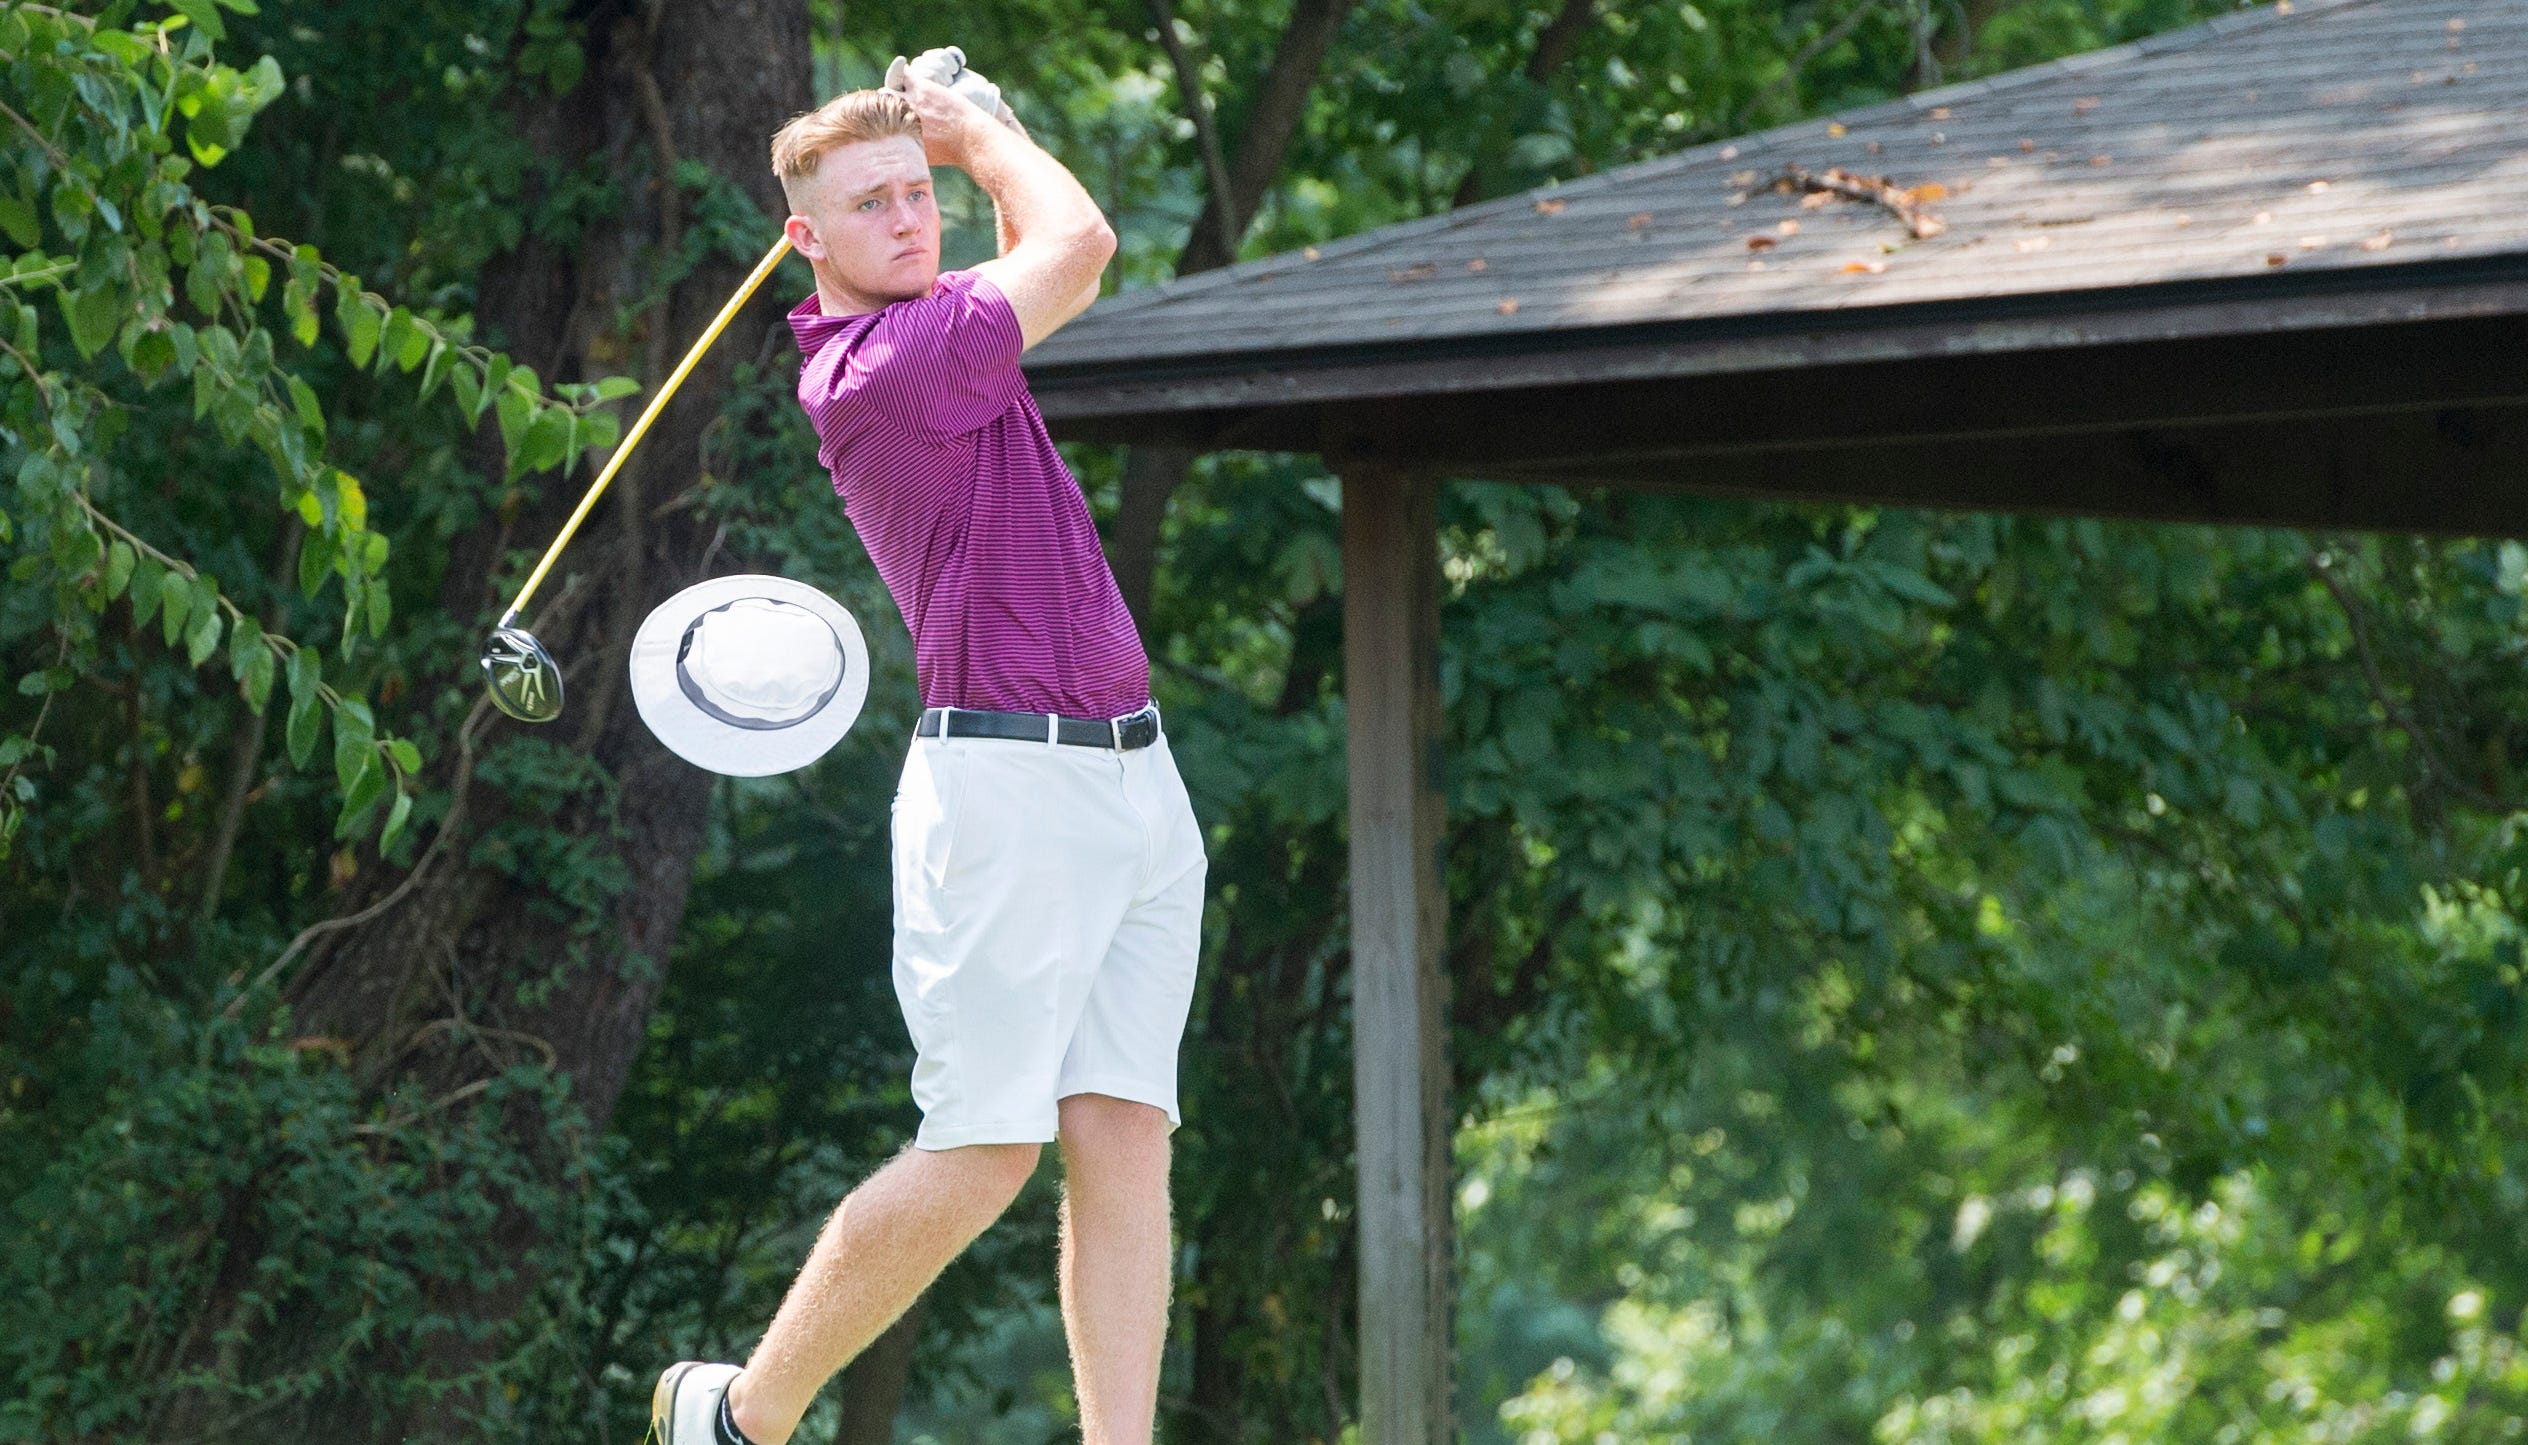 Stewie Hobgood takes the lead going into final round of Men's City Tournament